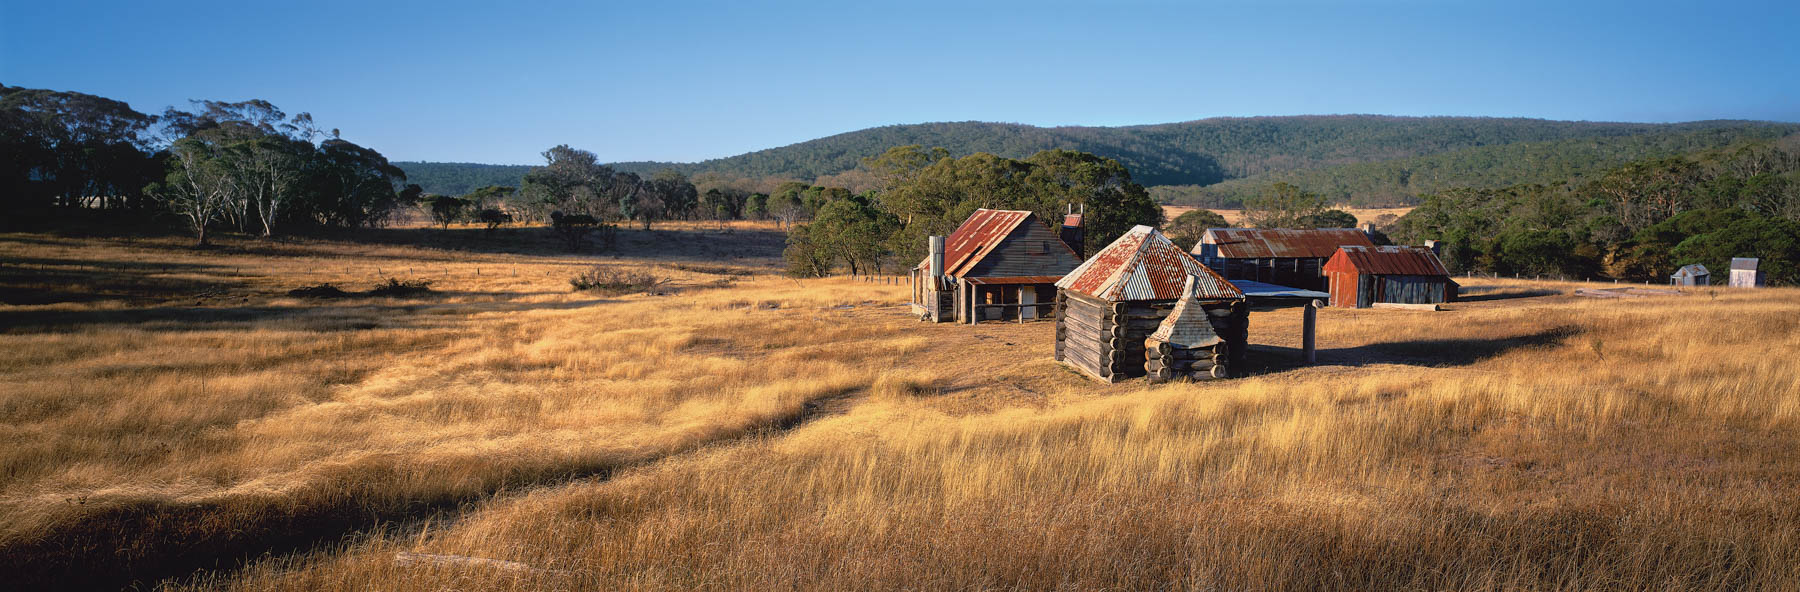 Coolamine Homestead, NSW